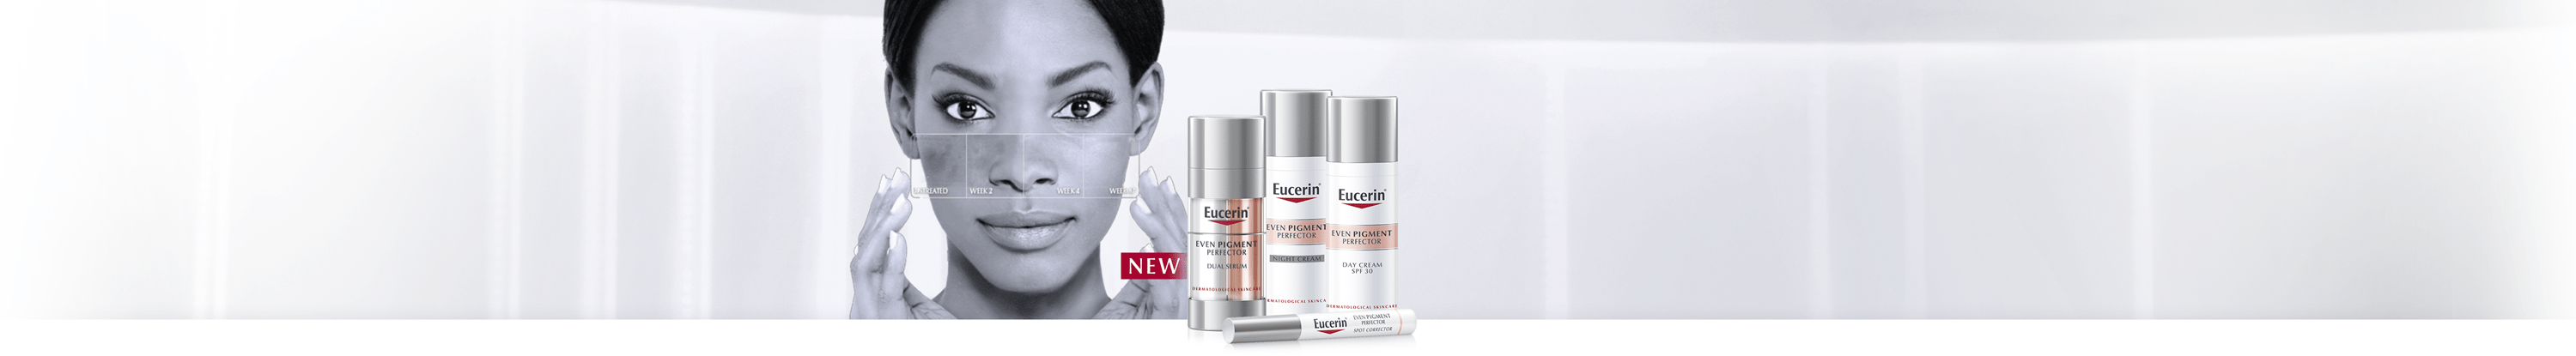 Eucerin Even Pigment Perfector Stage Teaser